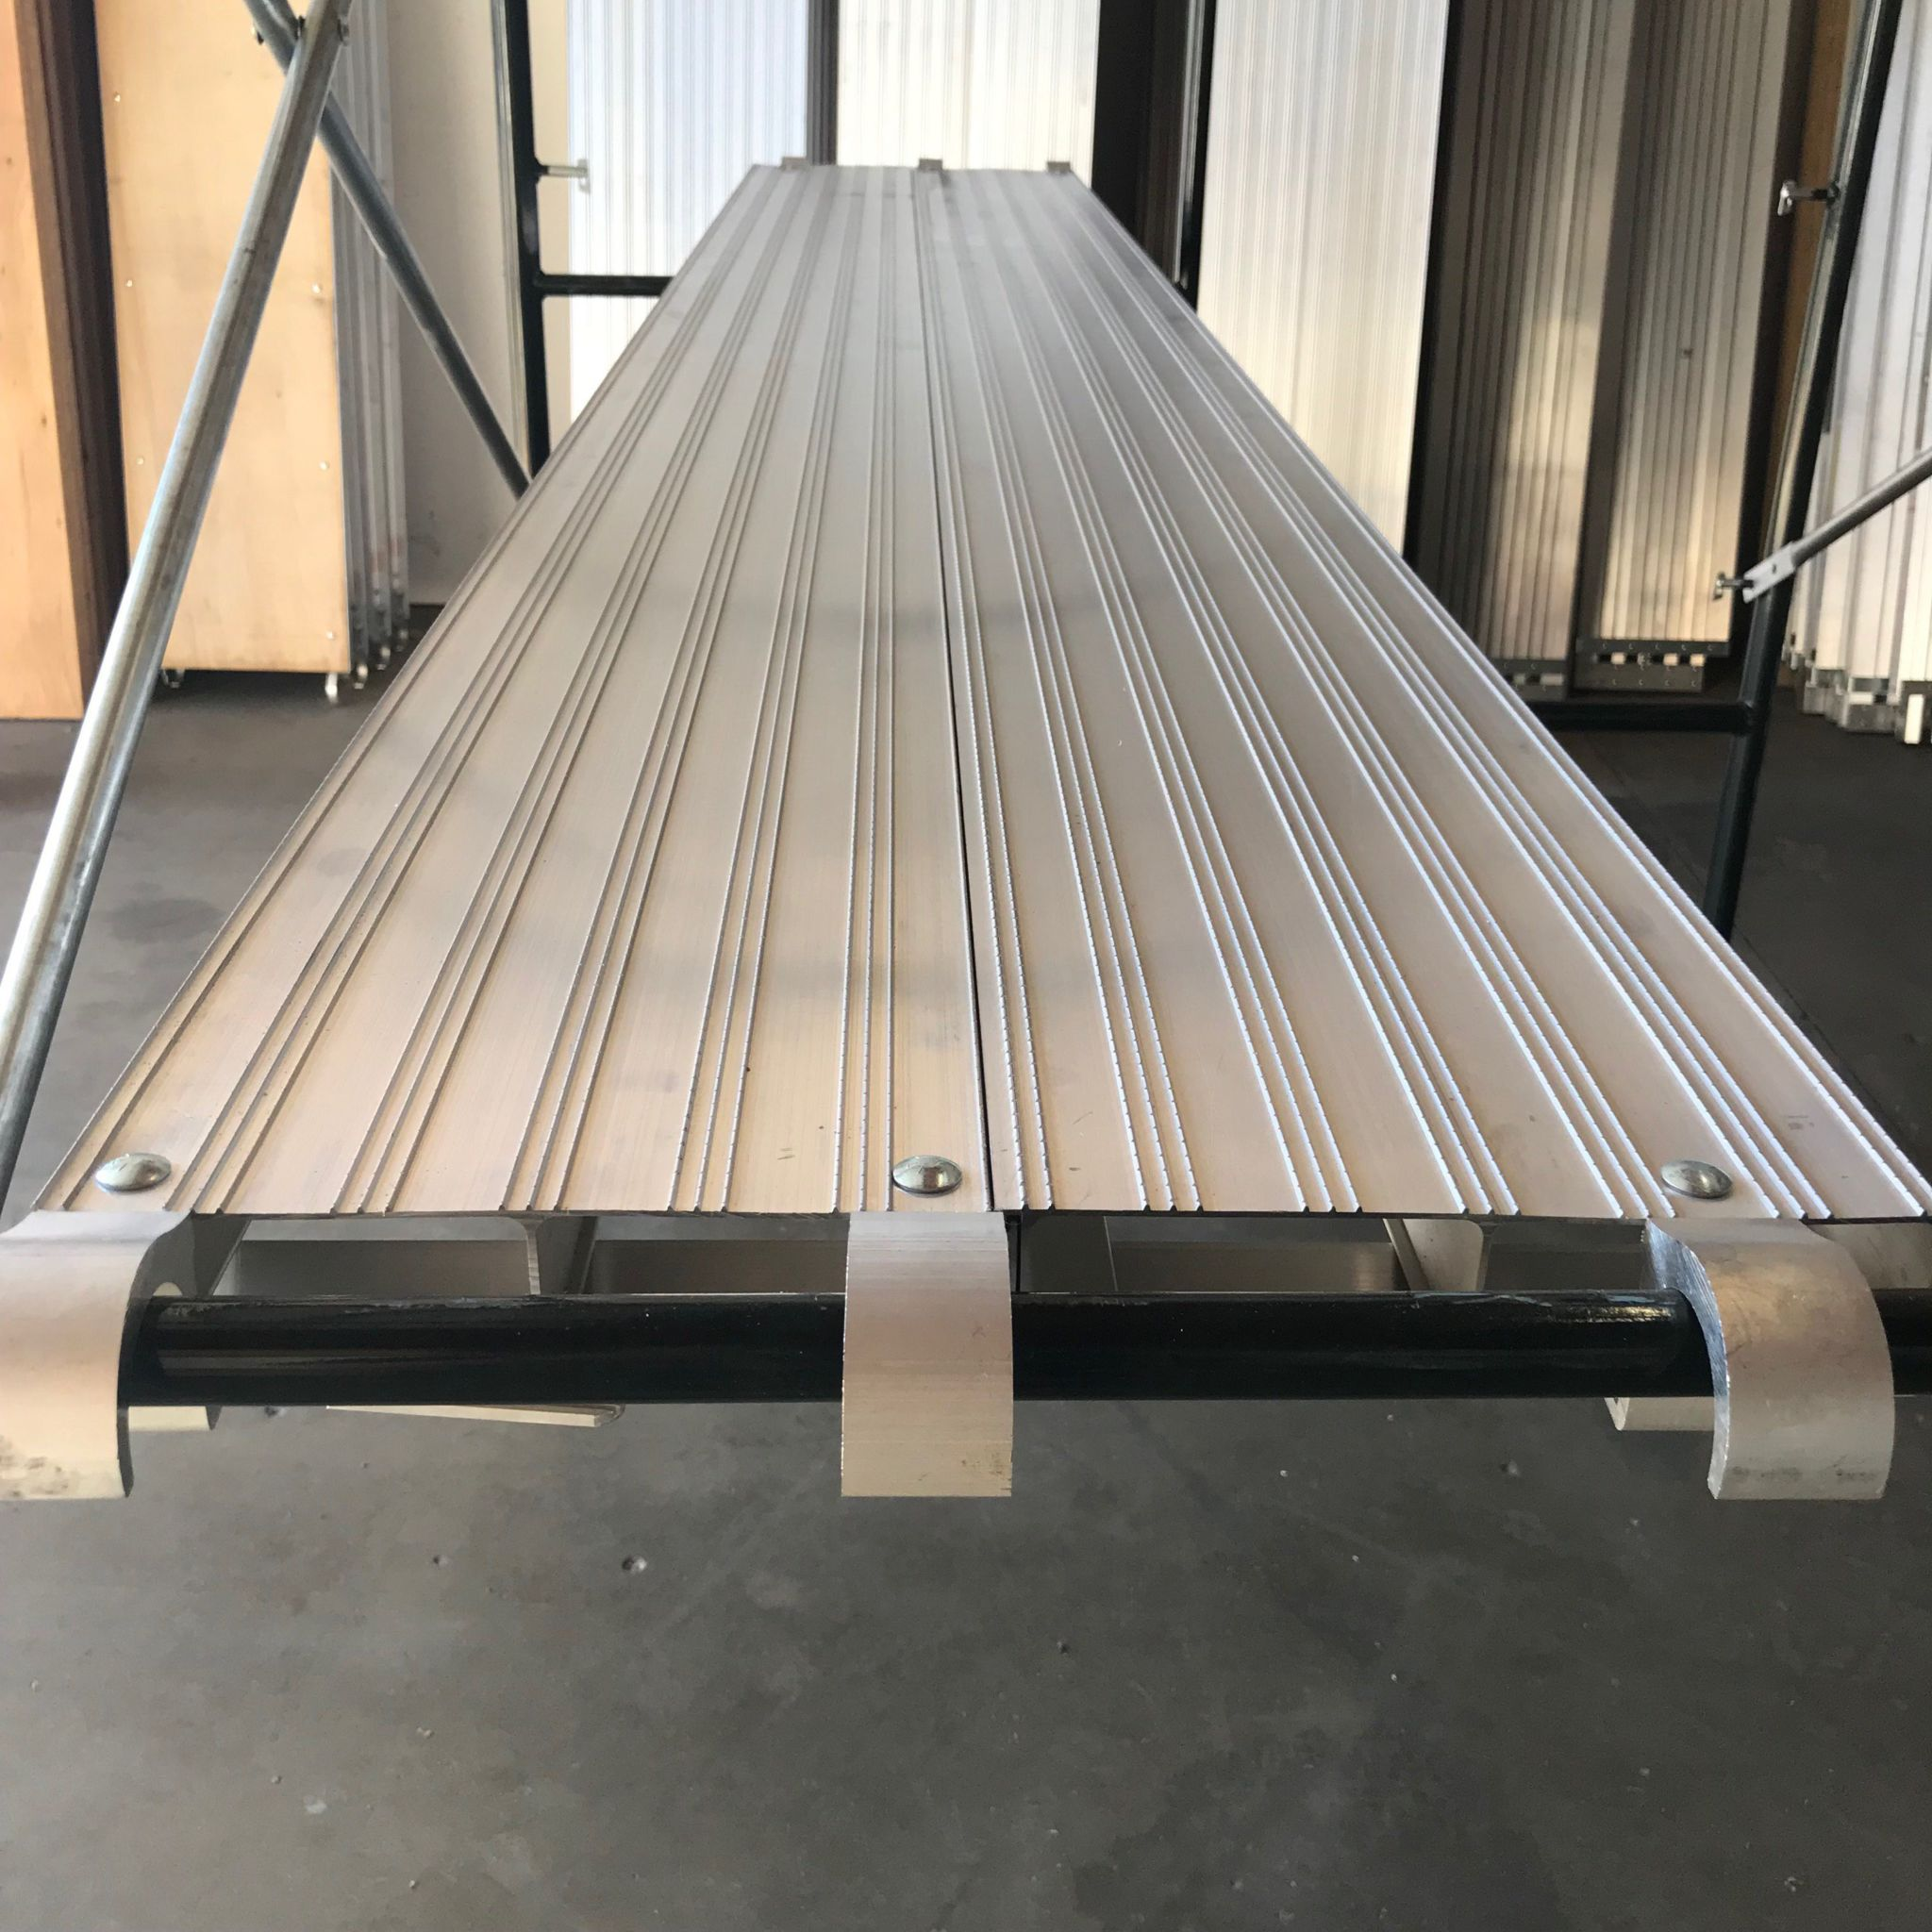 Aluminum Scaffold Boards : Steel scaffolding planks industrial ladder and